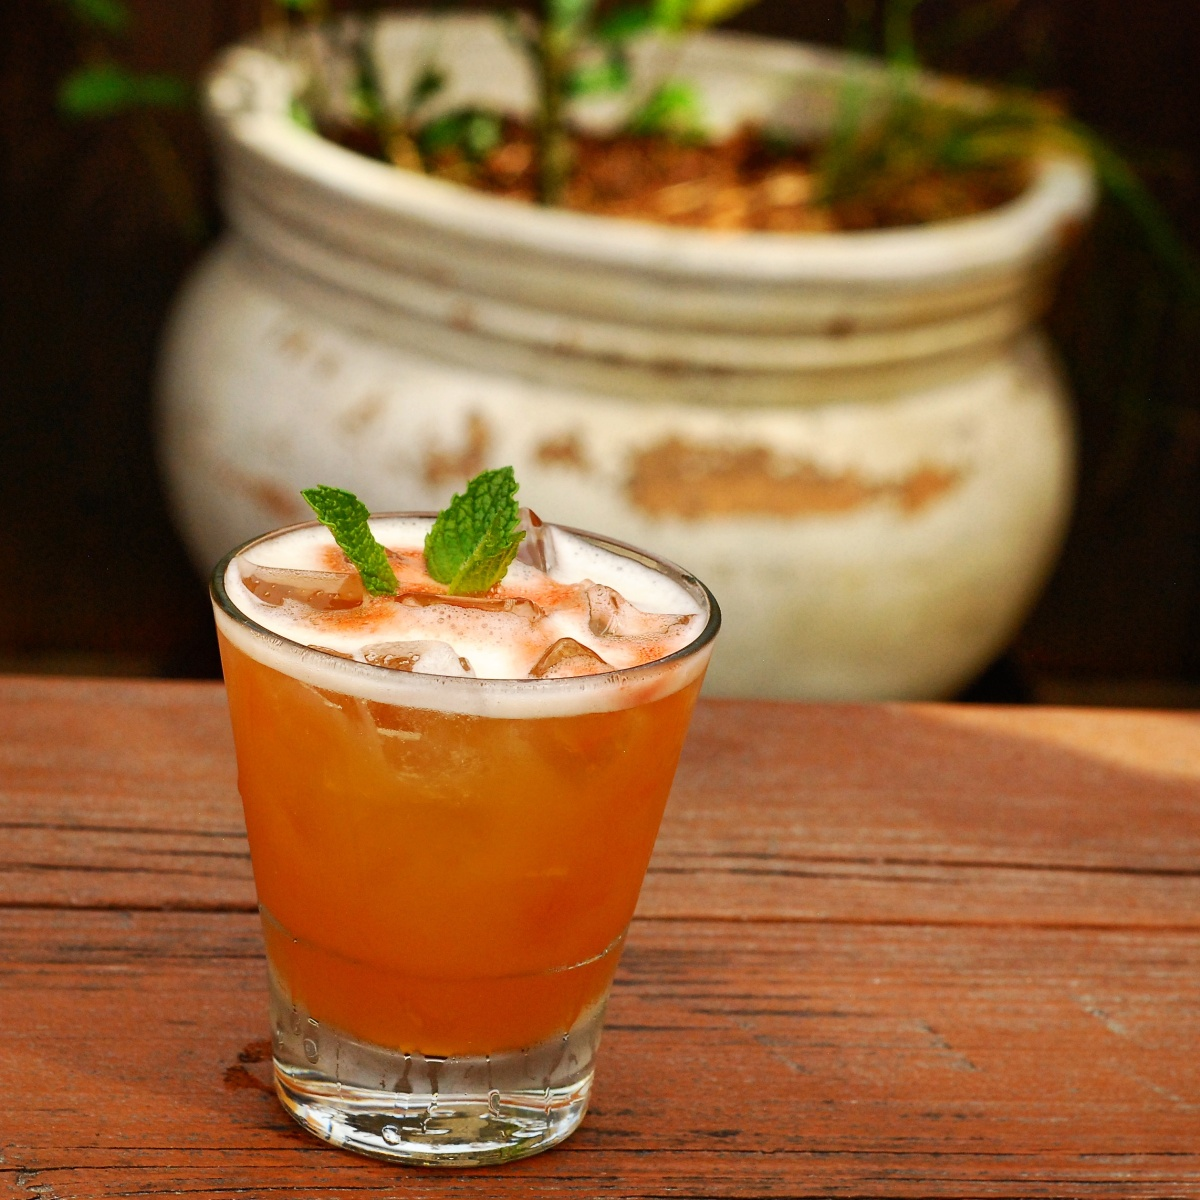 AROUND NOLA: Celebrate National Rum Day in New Orleans